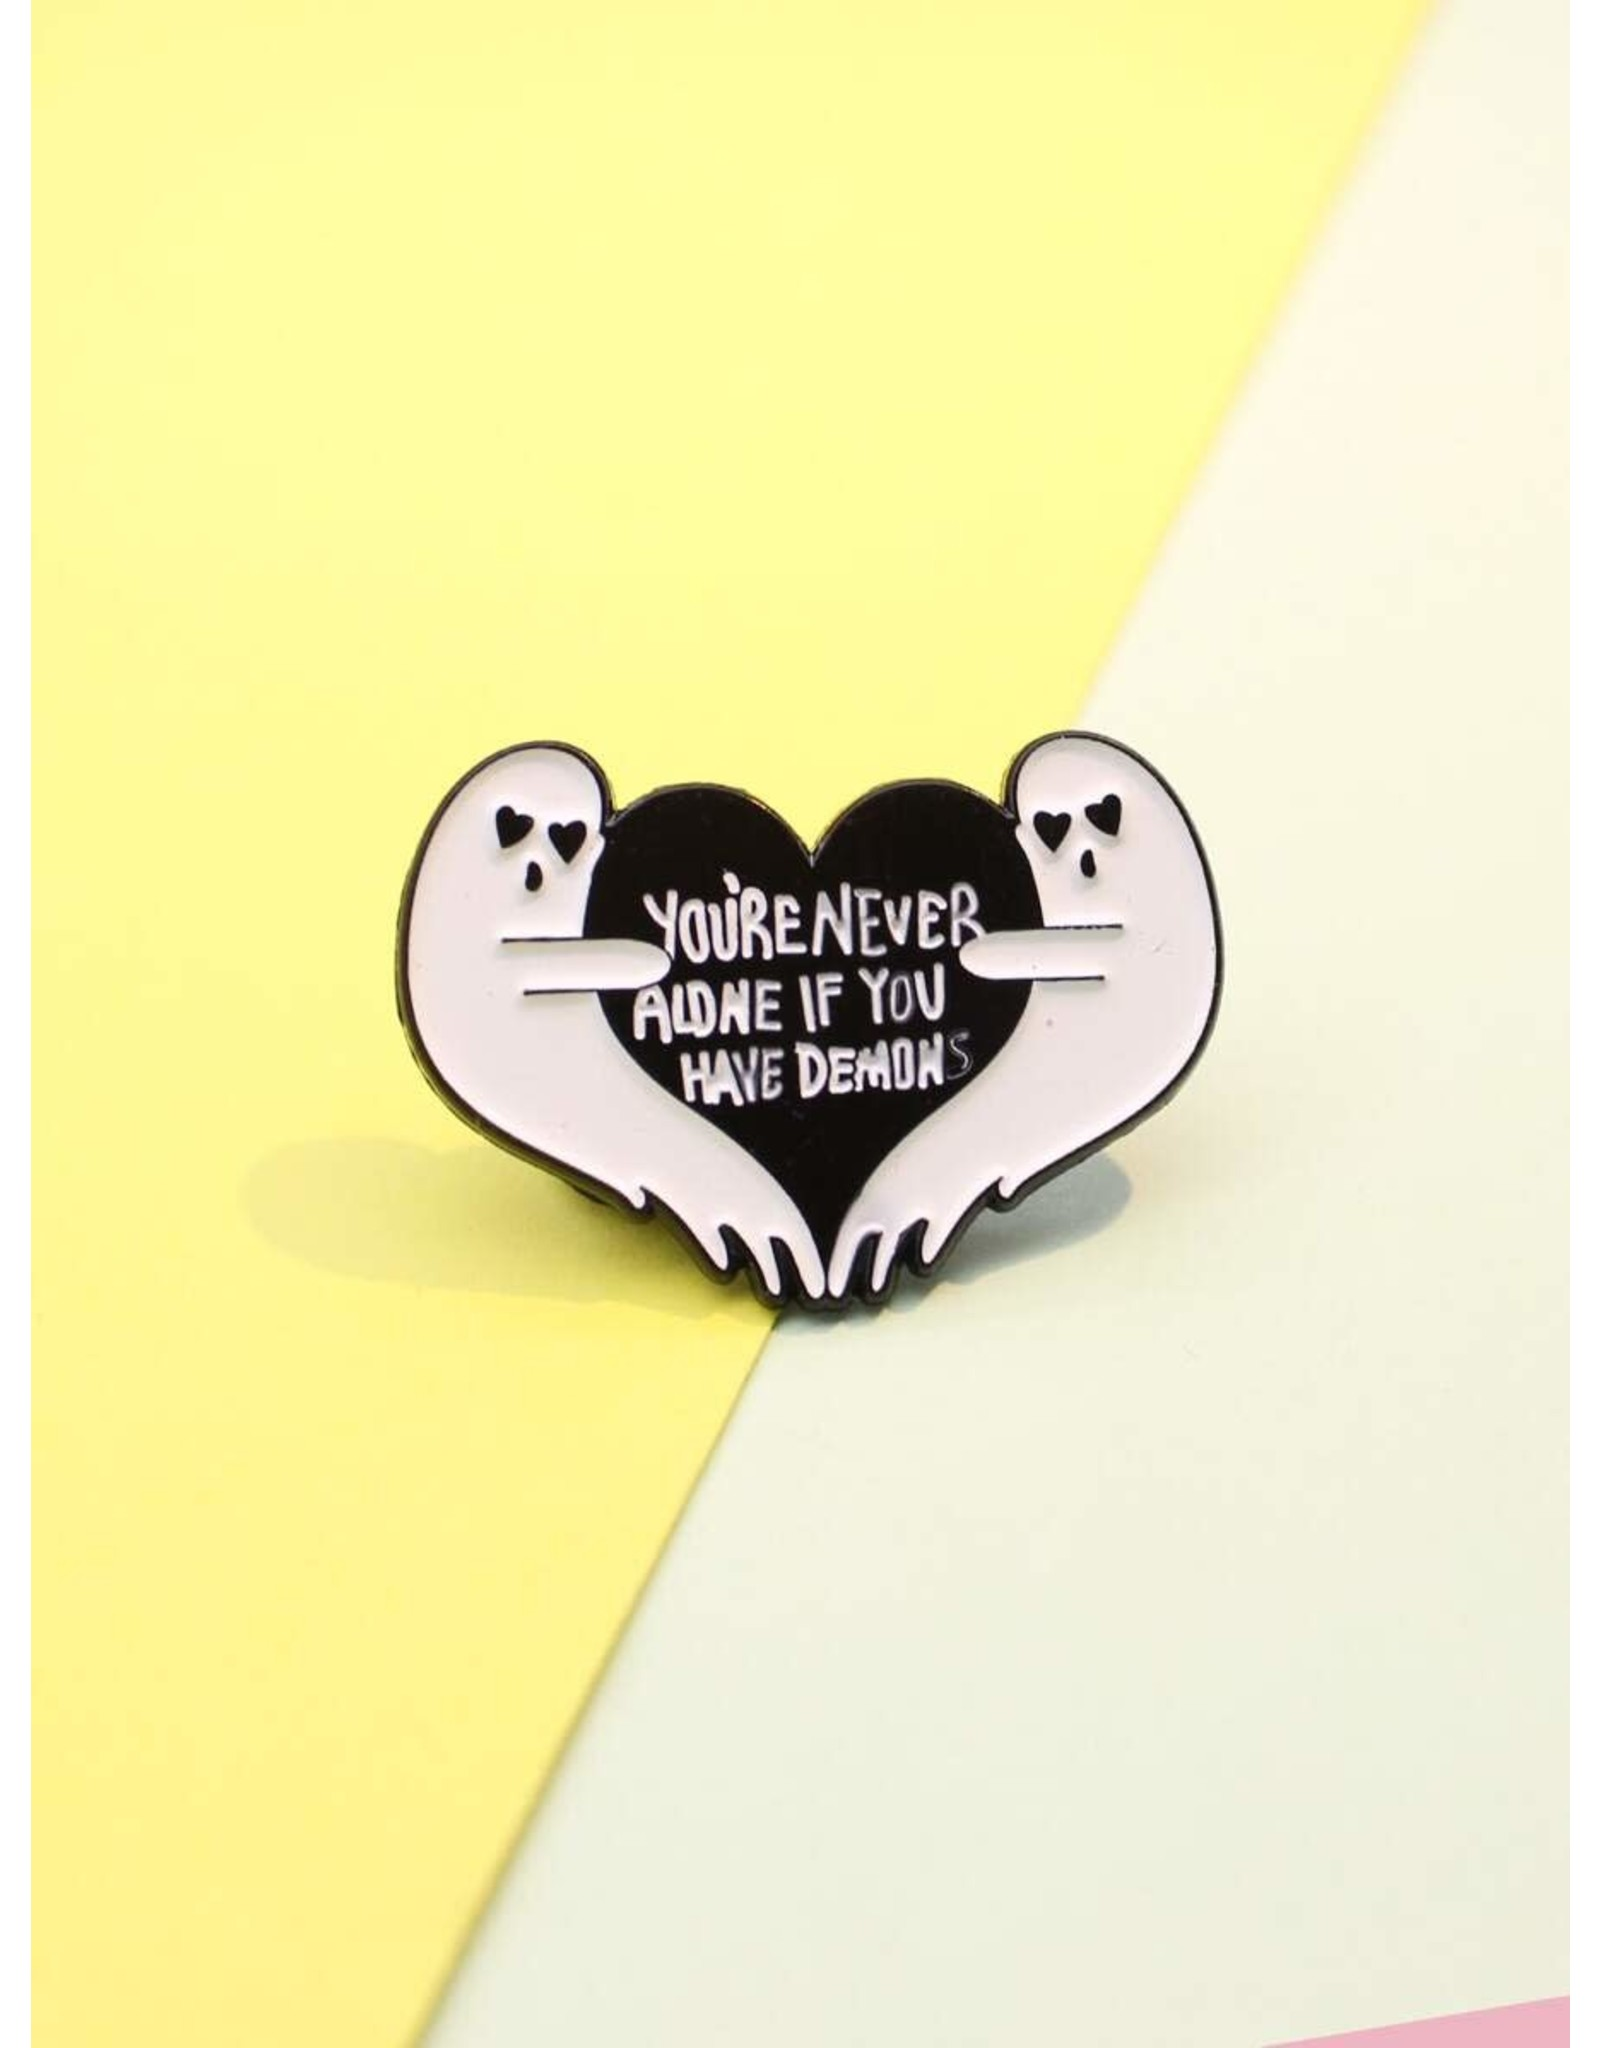 Shein Pin - You're Never Alone If You Have Demons - Ghosts